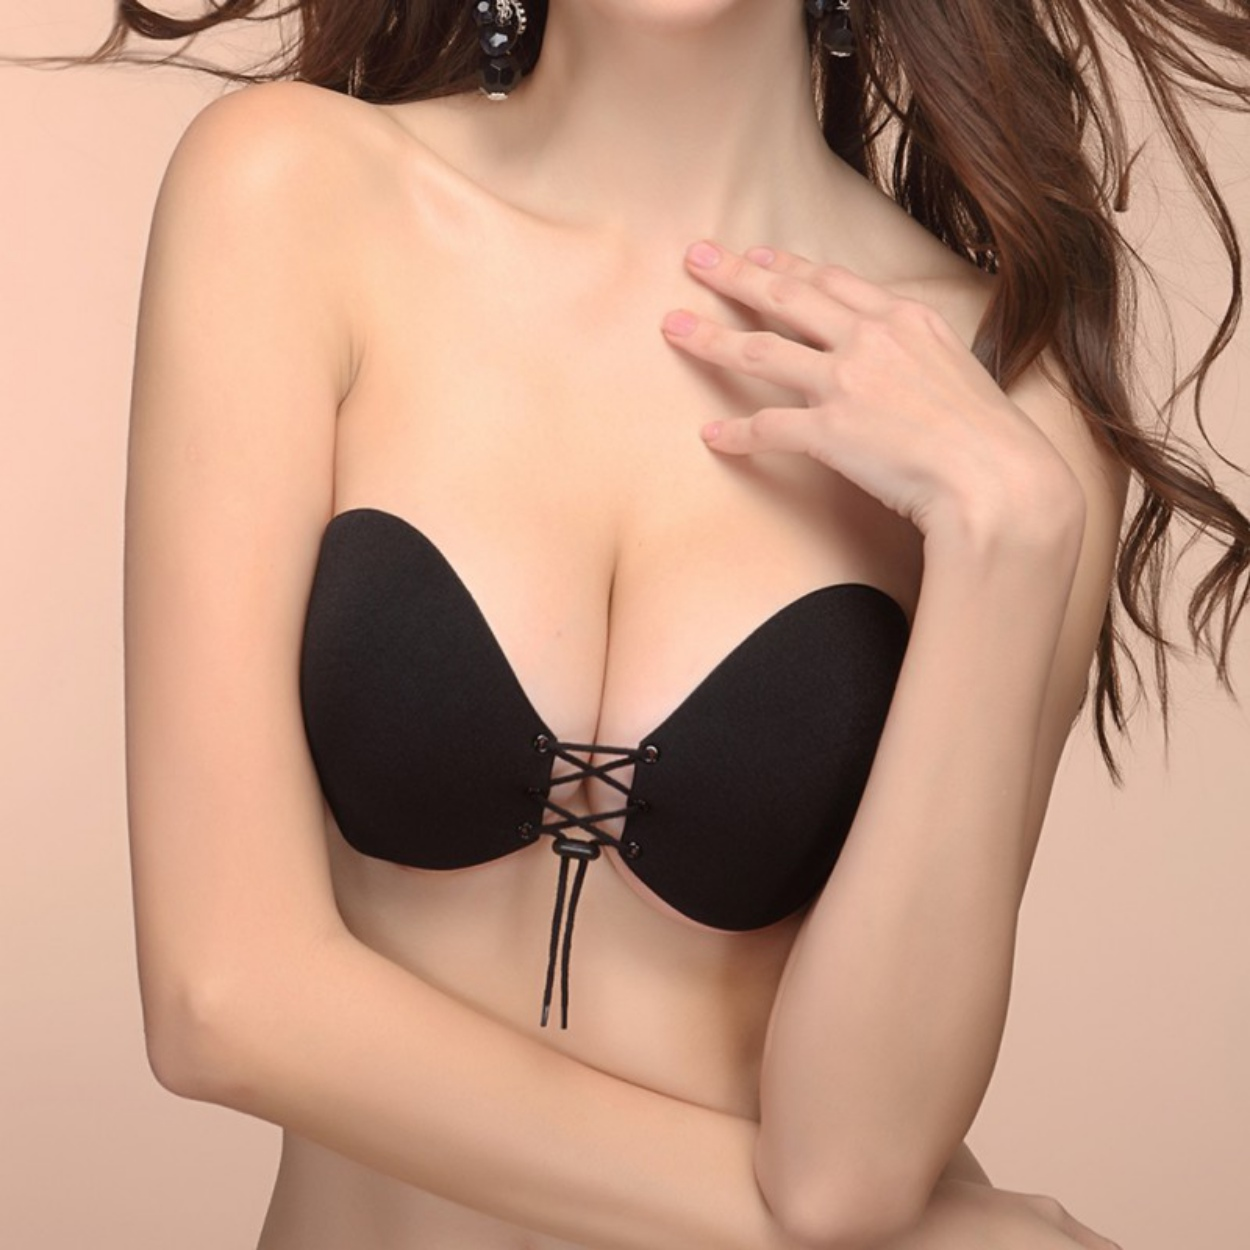 Women Silicone Strapless Lady Bra Invisible Push Up Stick On Self Adhesive Front Lacing Bras Lingerie Cup